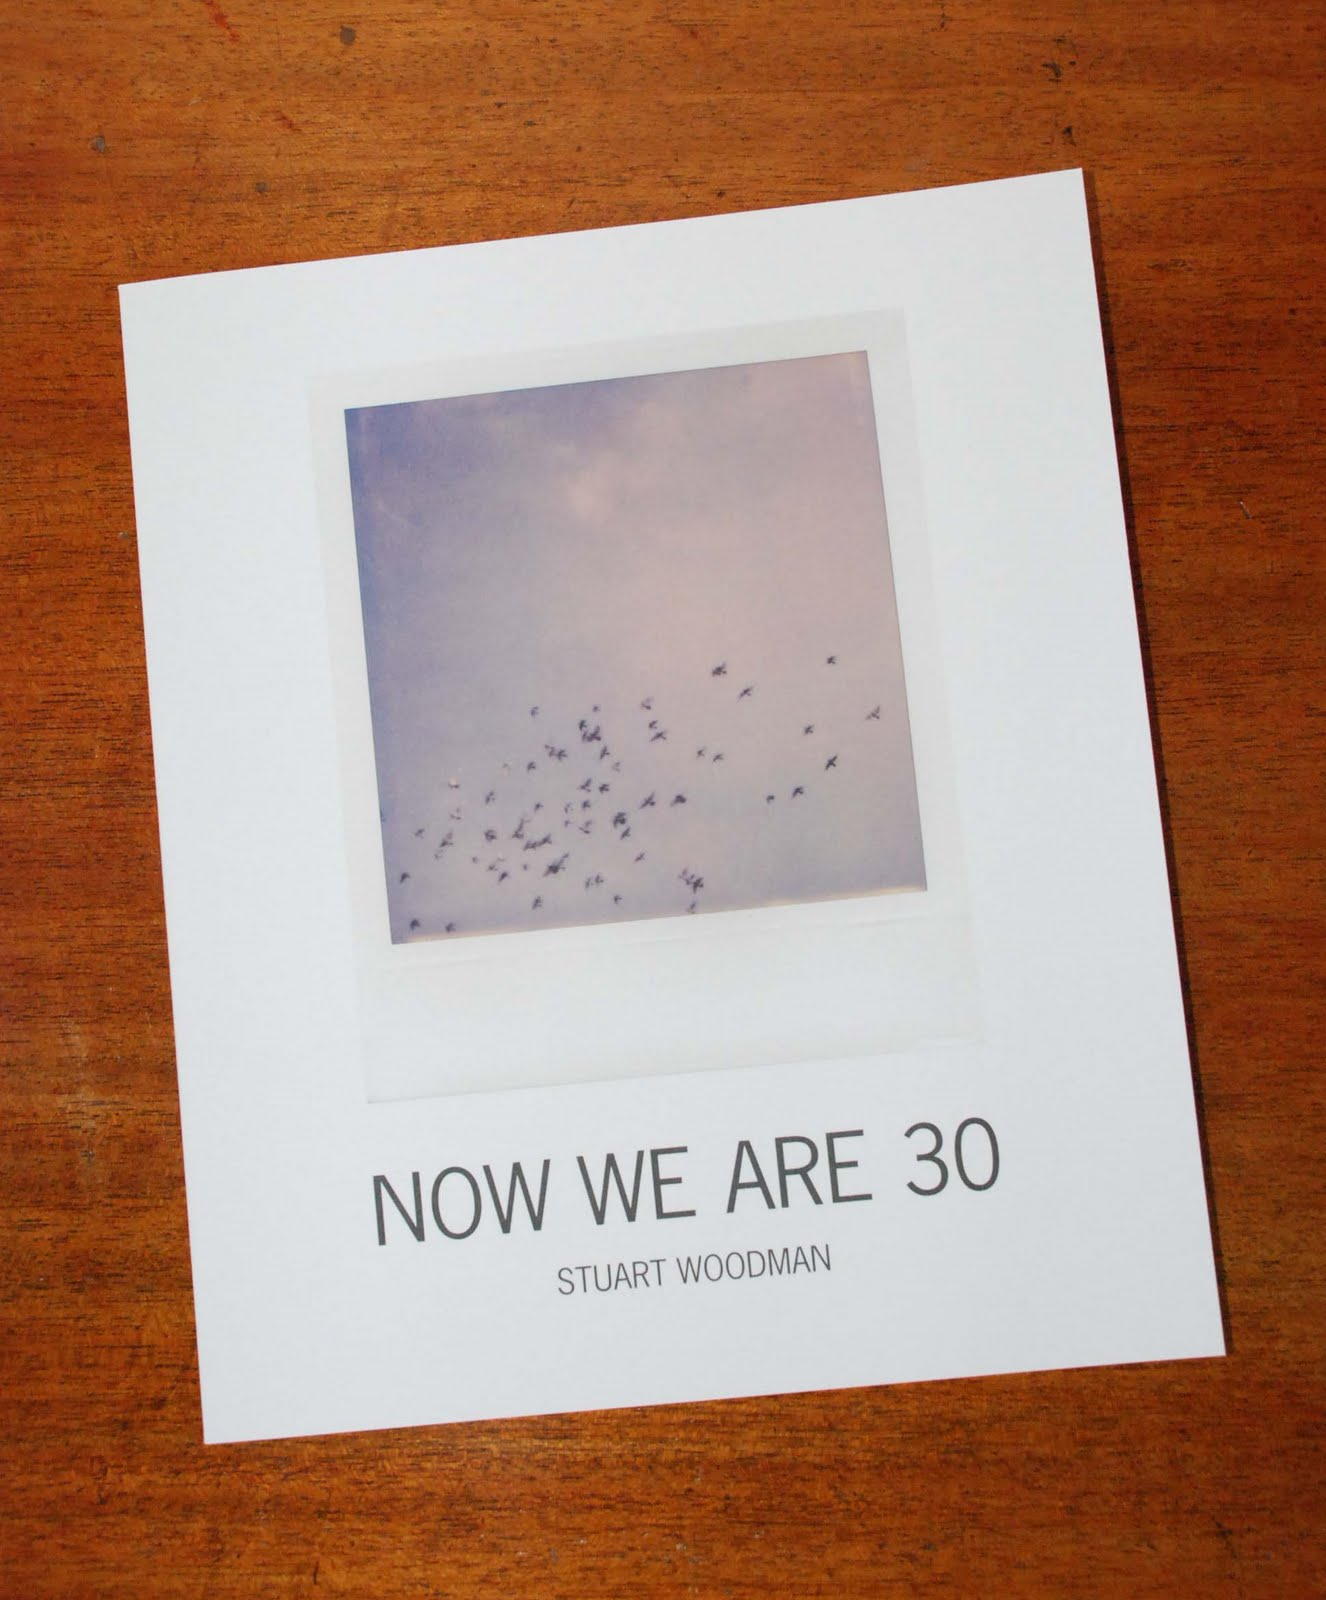 Stuart Woodman, Now We Are 30